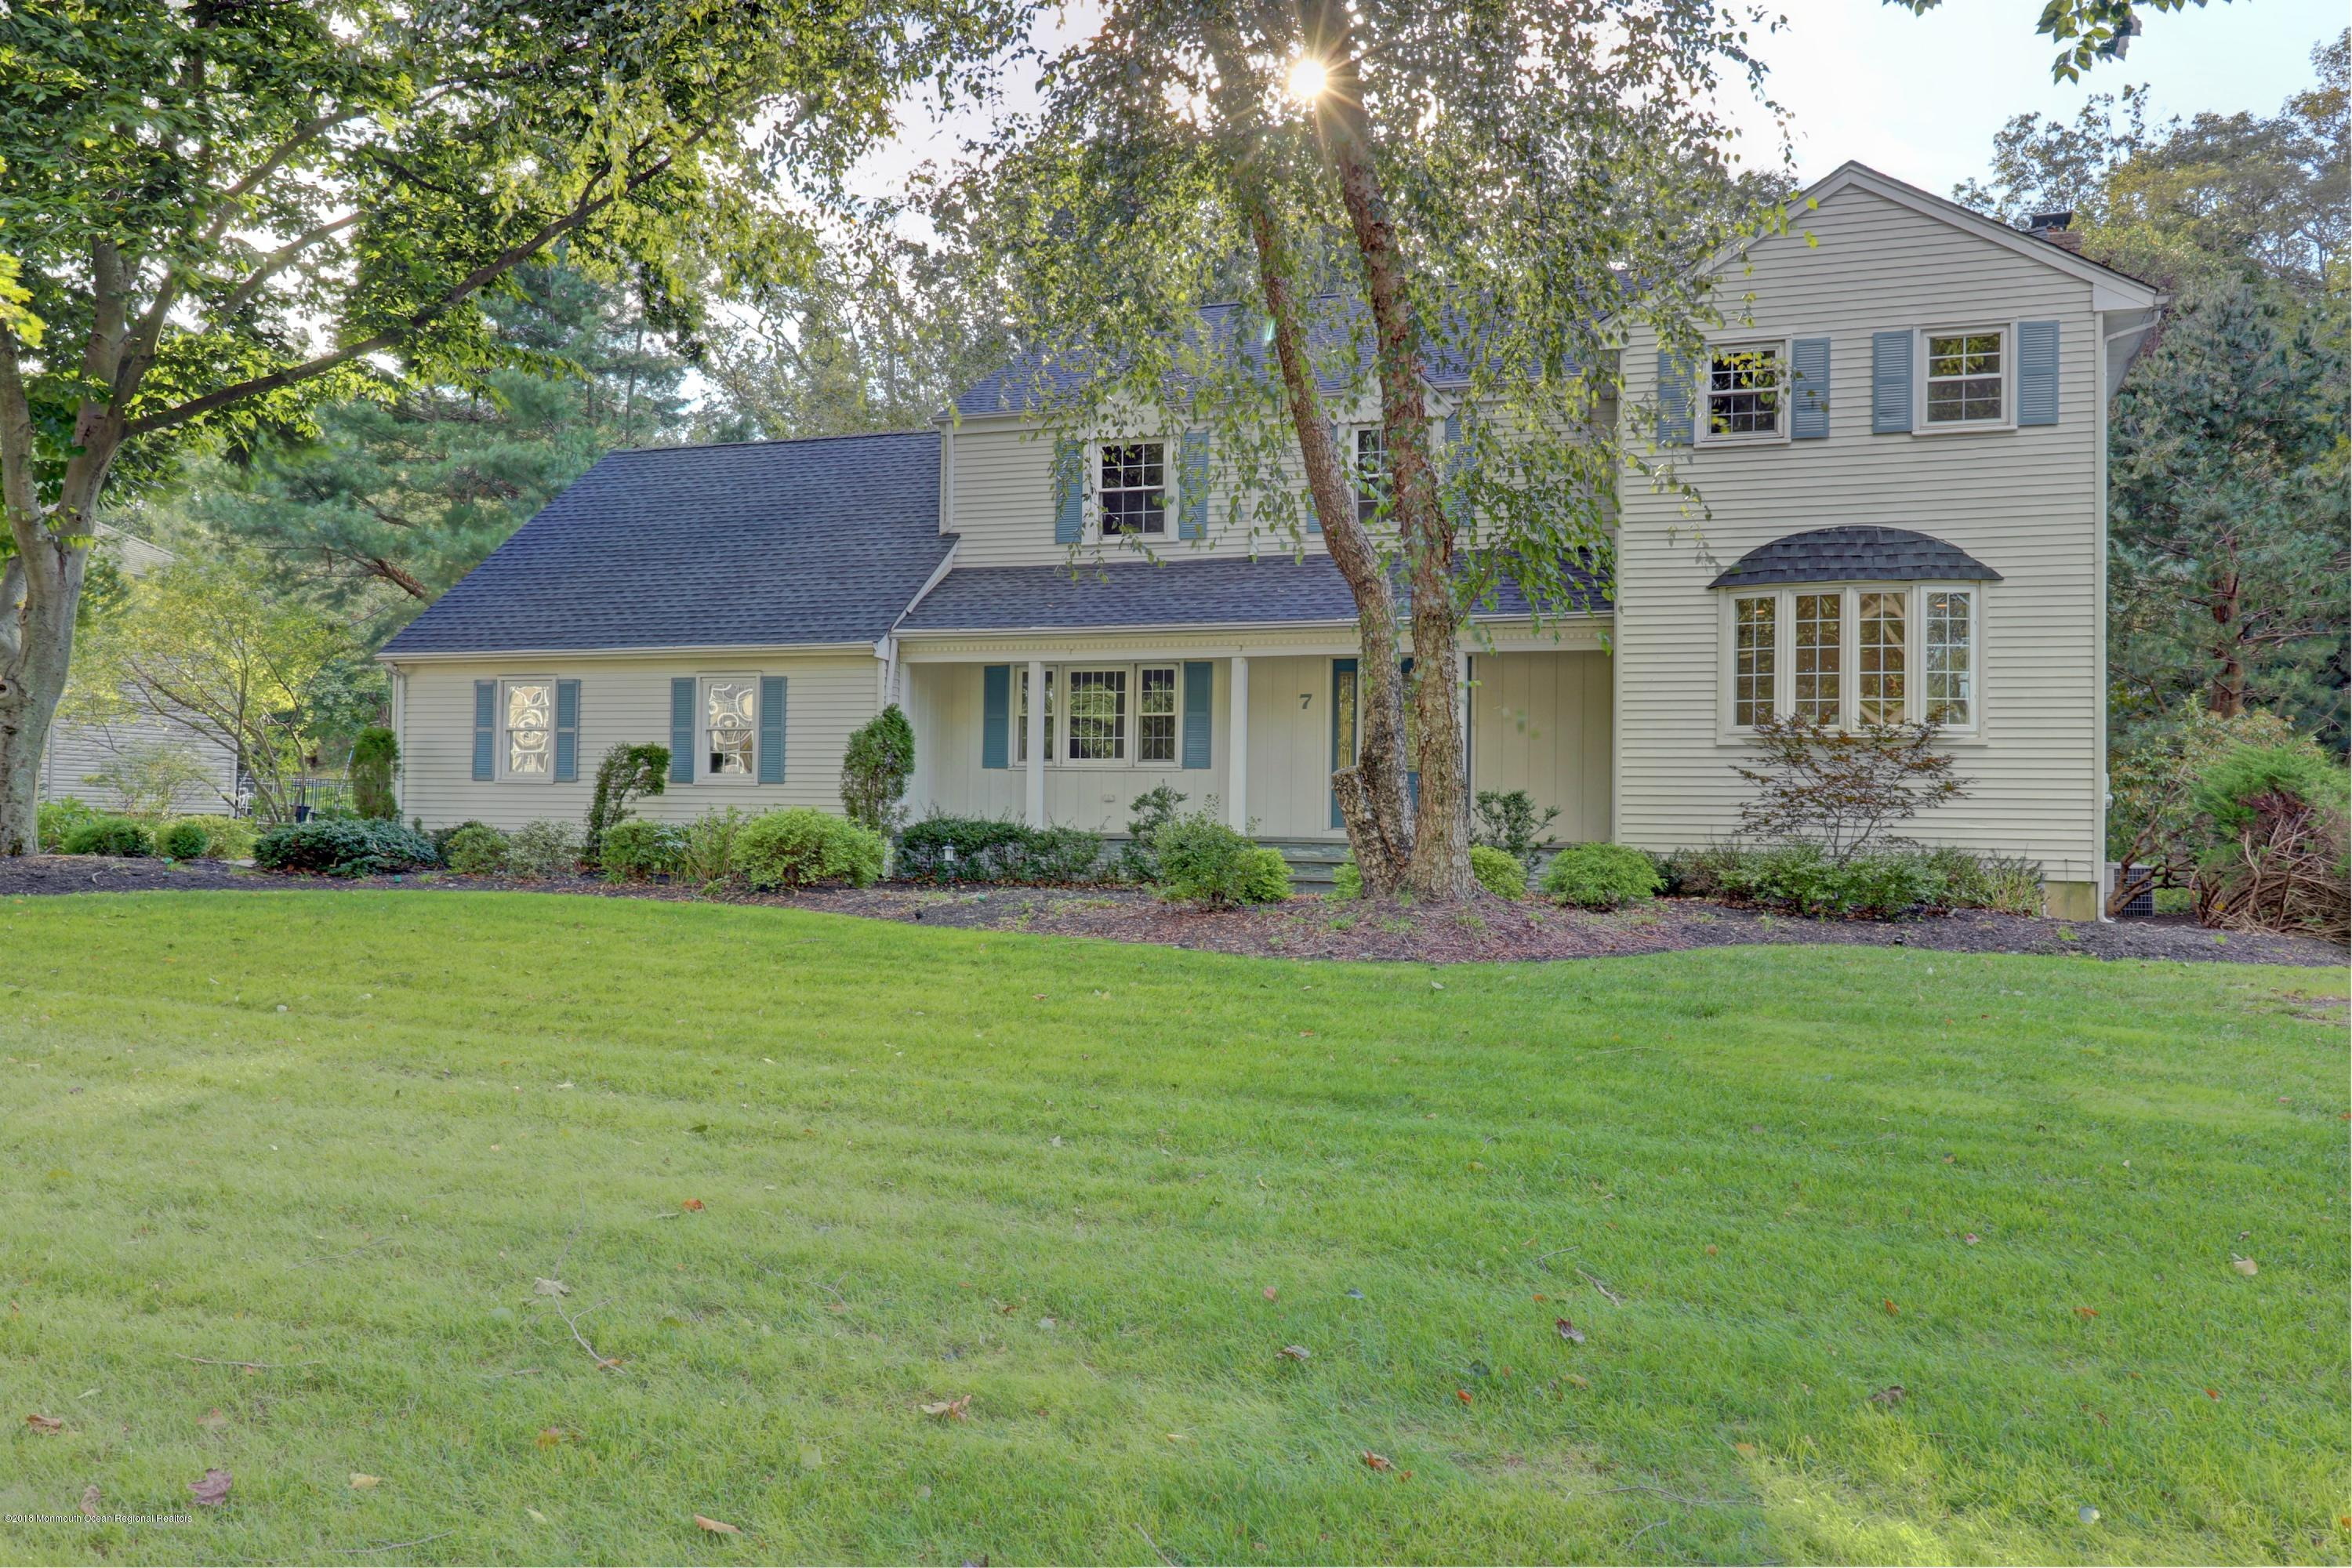 Photo of 7 Woods Road, West Long Branch, NJ 07764